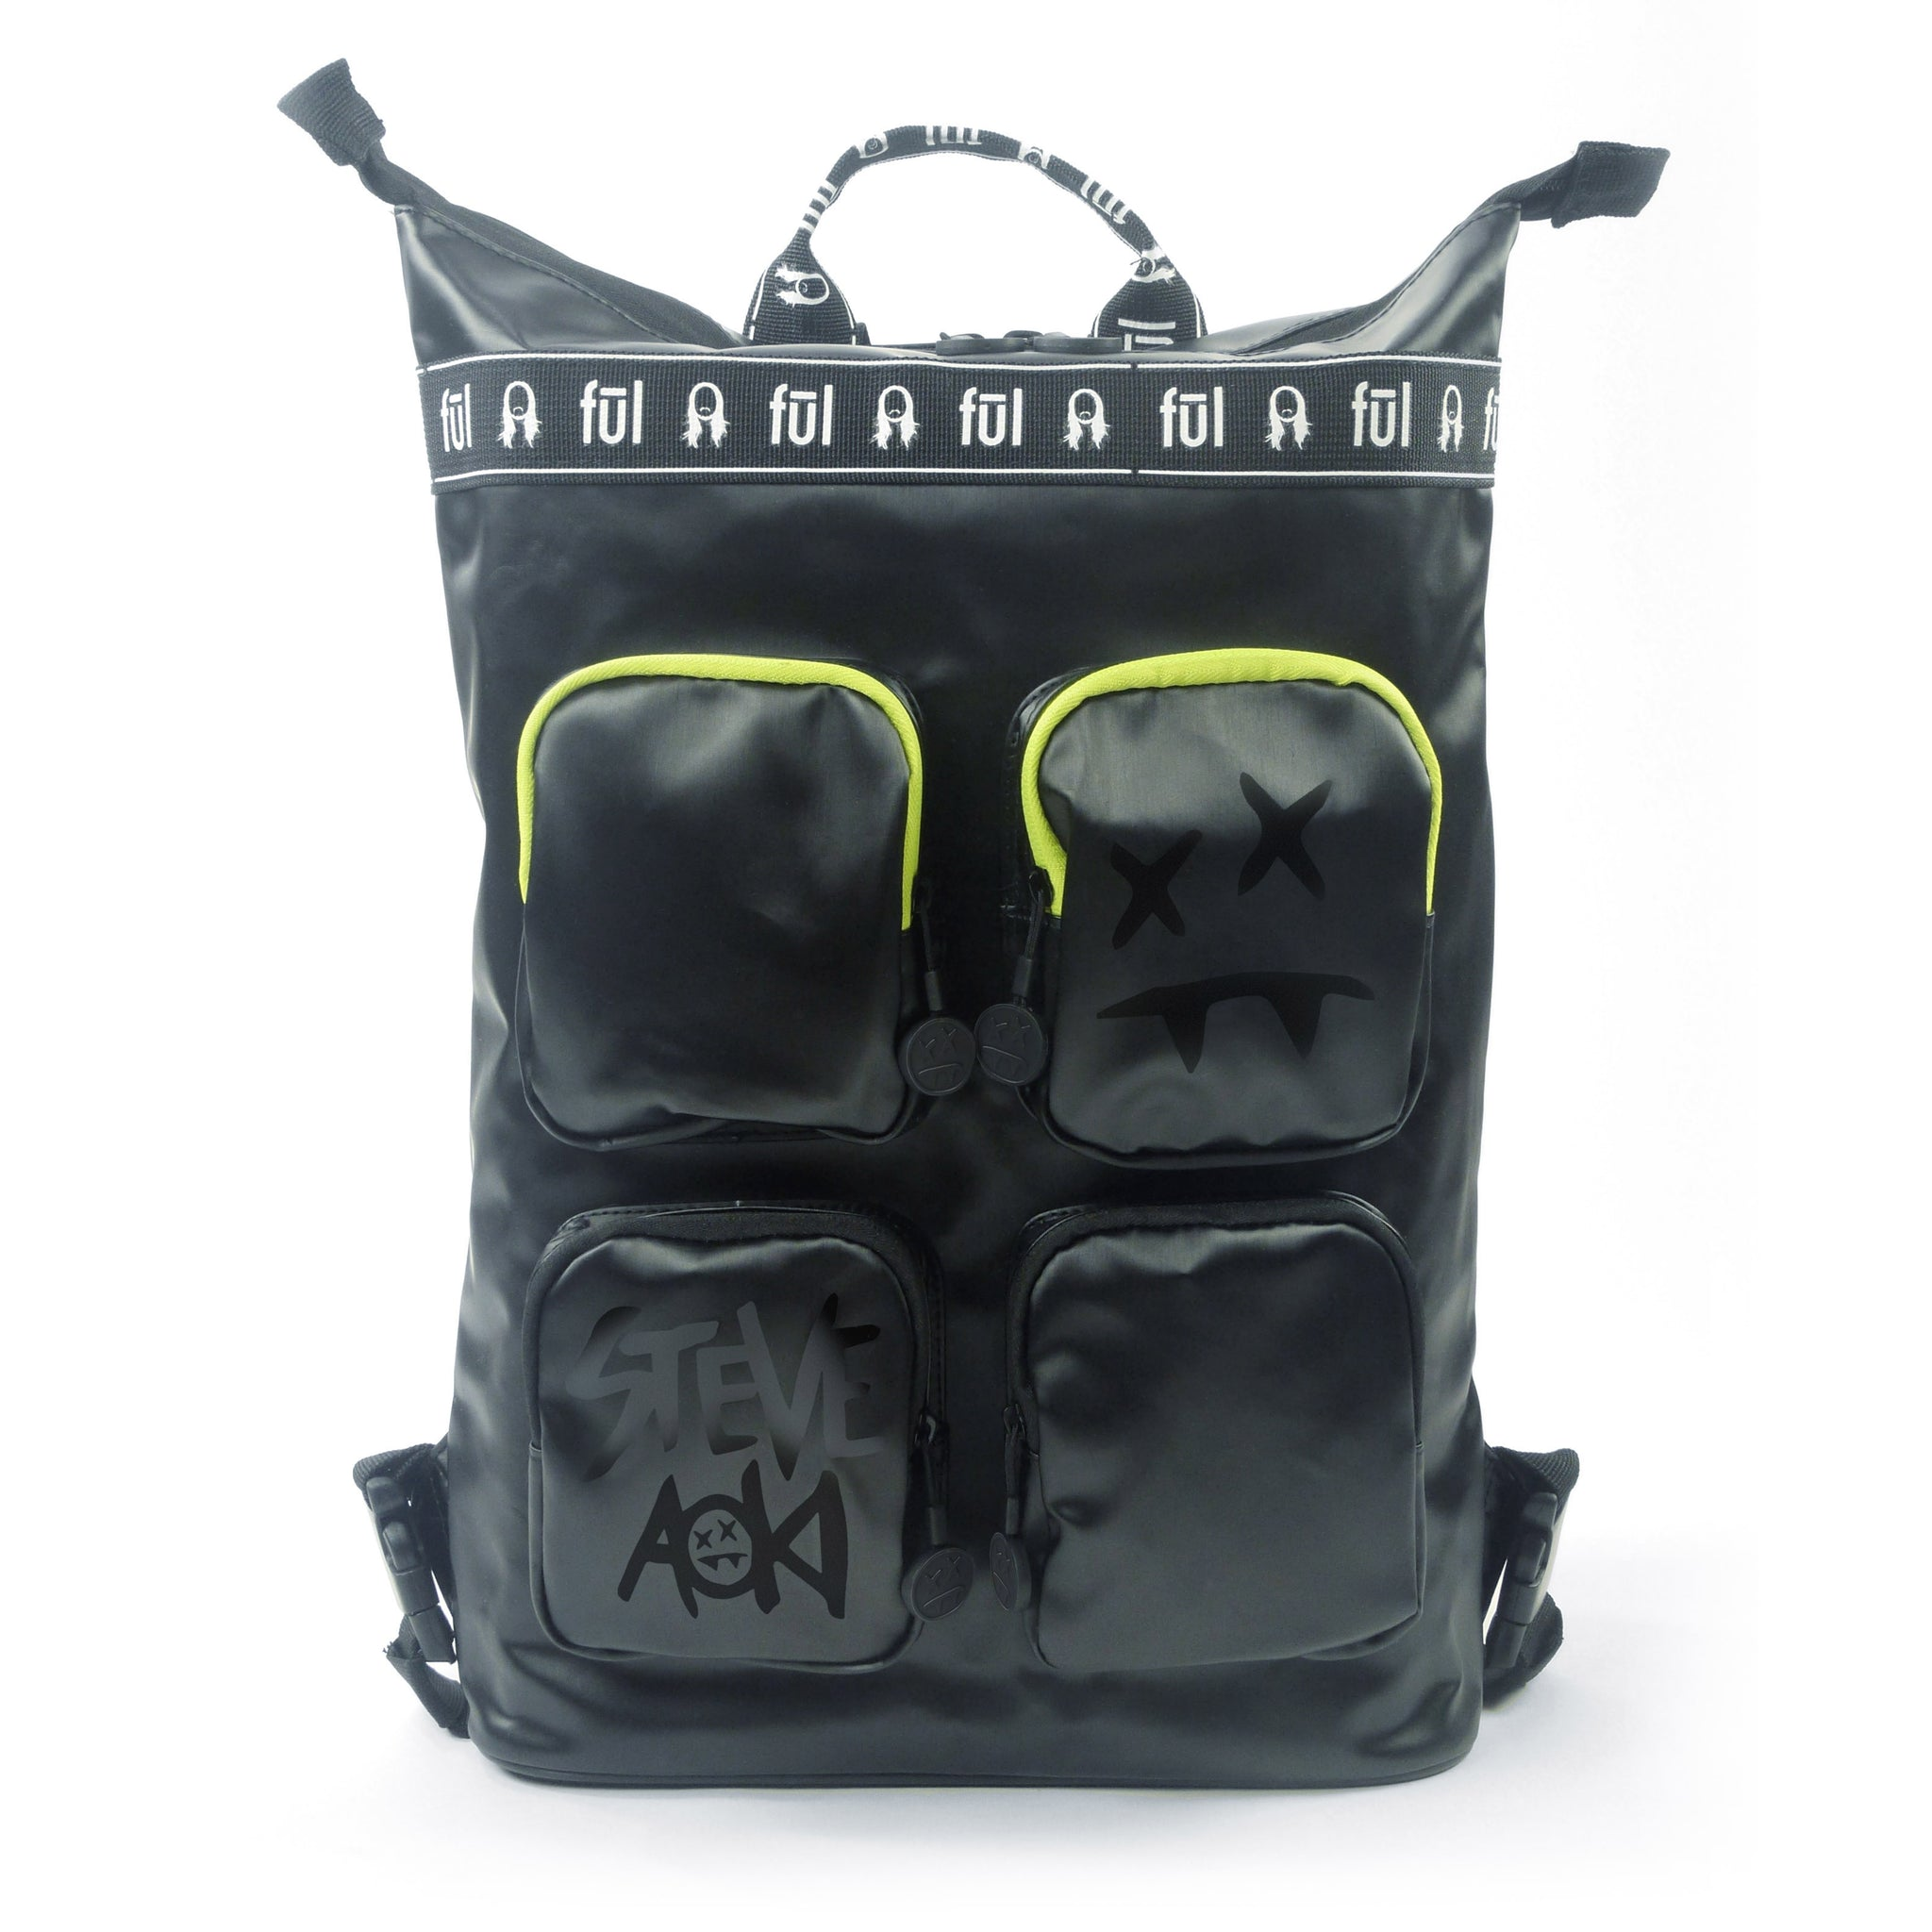 Steve Aoki FŪL FANG Convertible Backpack Tote - Black/Neon Green